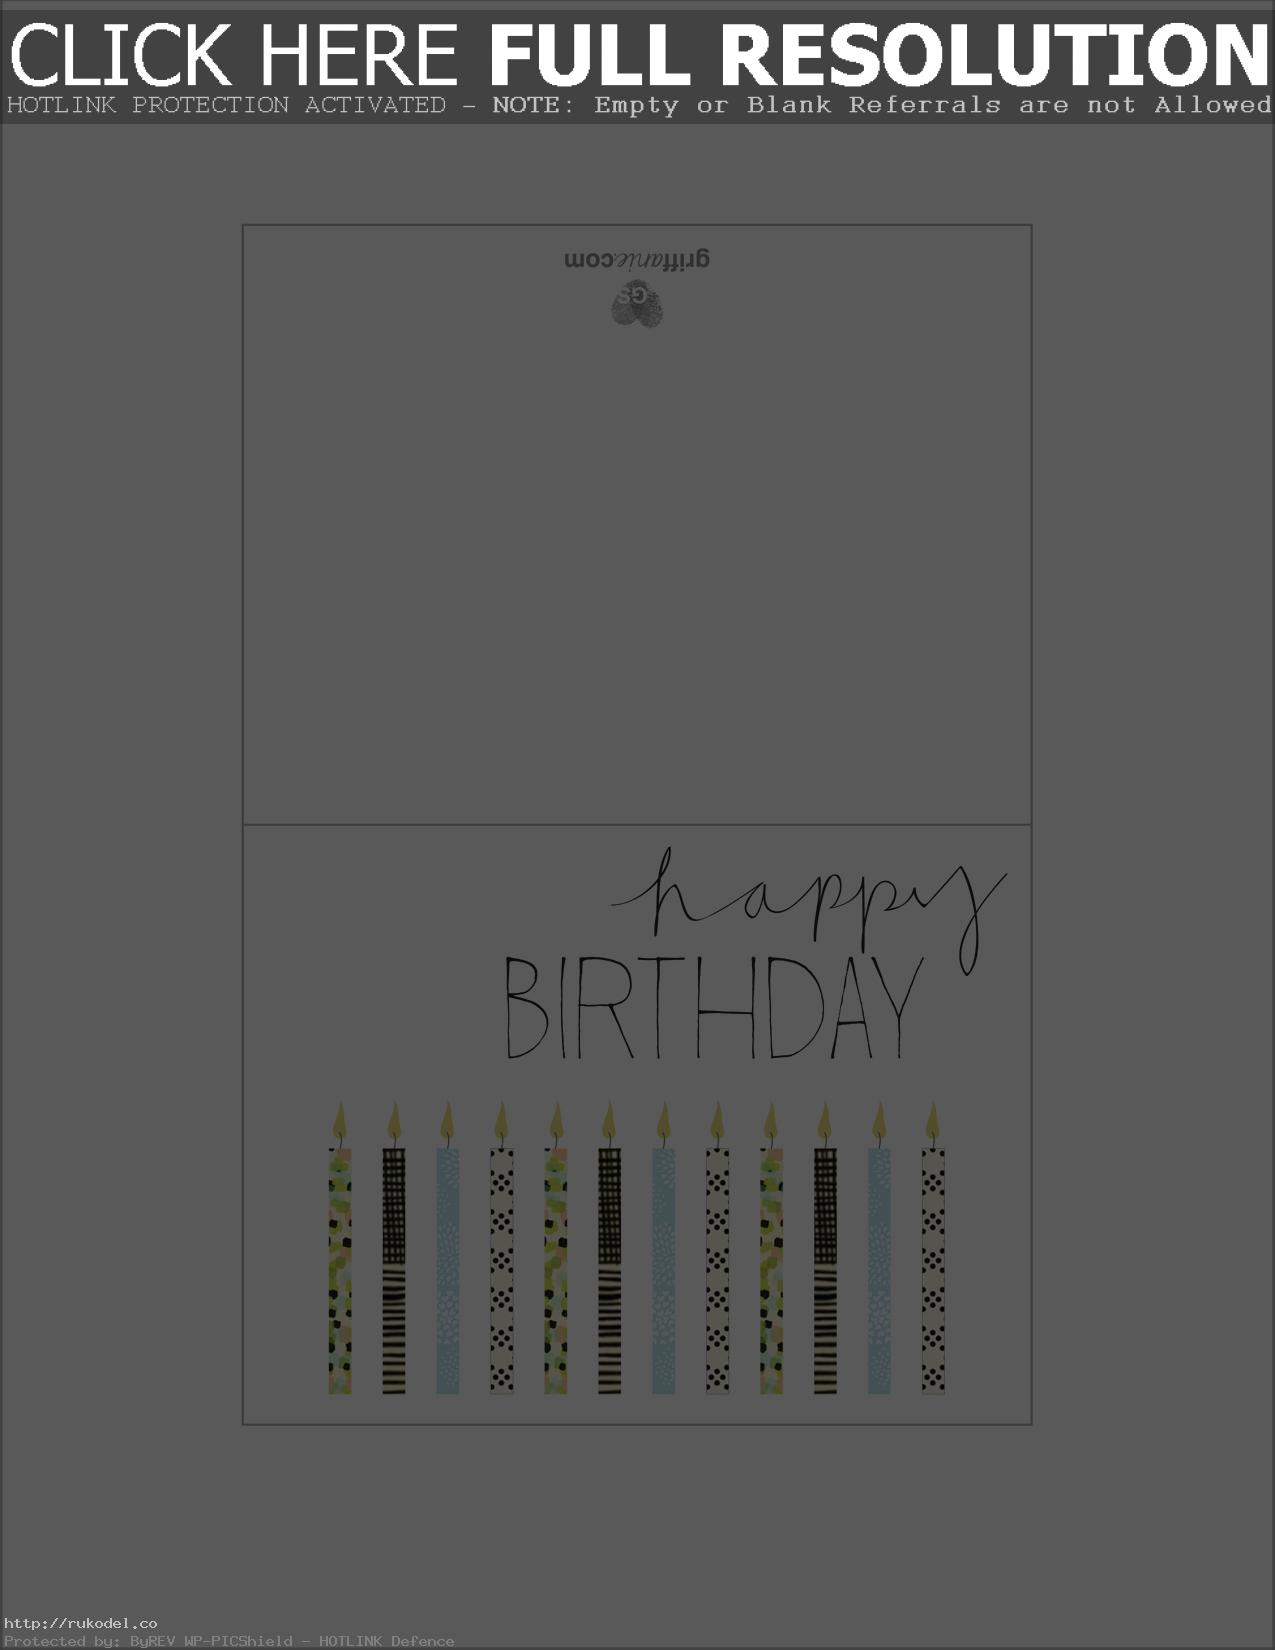 printable birthday card template ; birthday-card-for-dad-printable-cards-cute-gift-pictures-on-boys